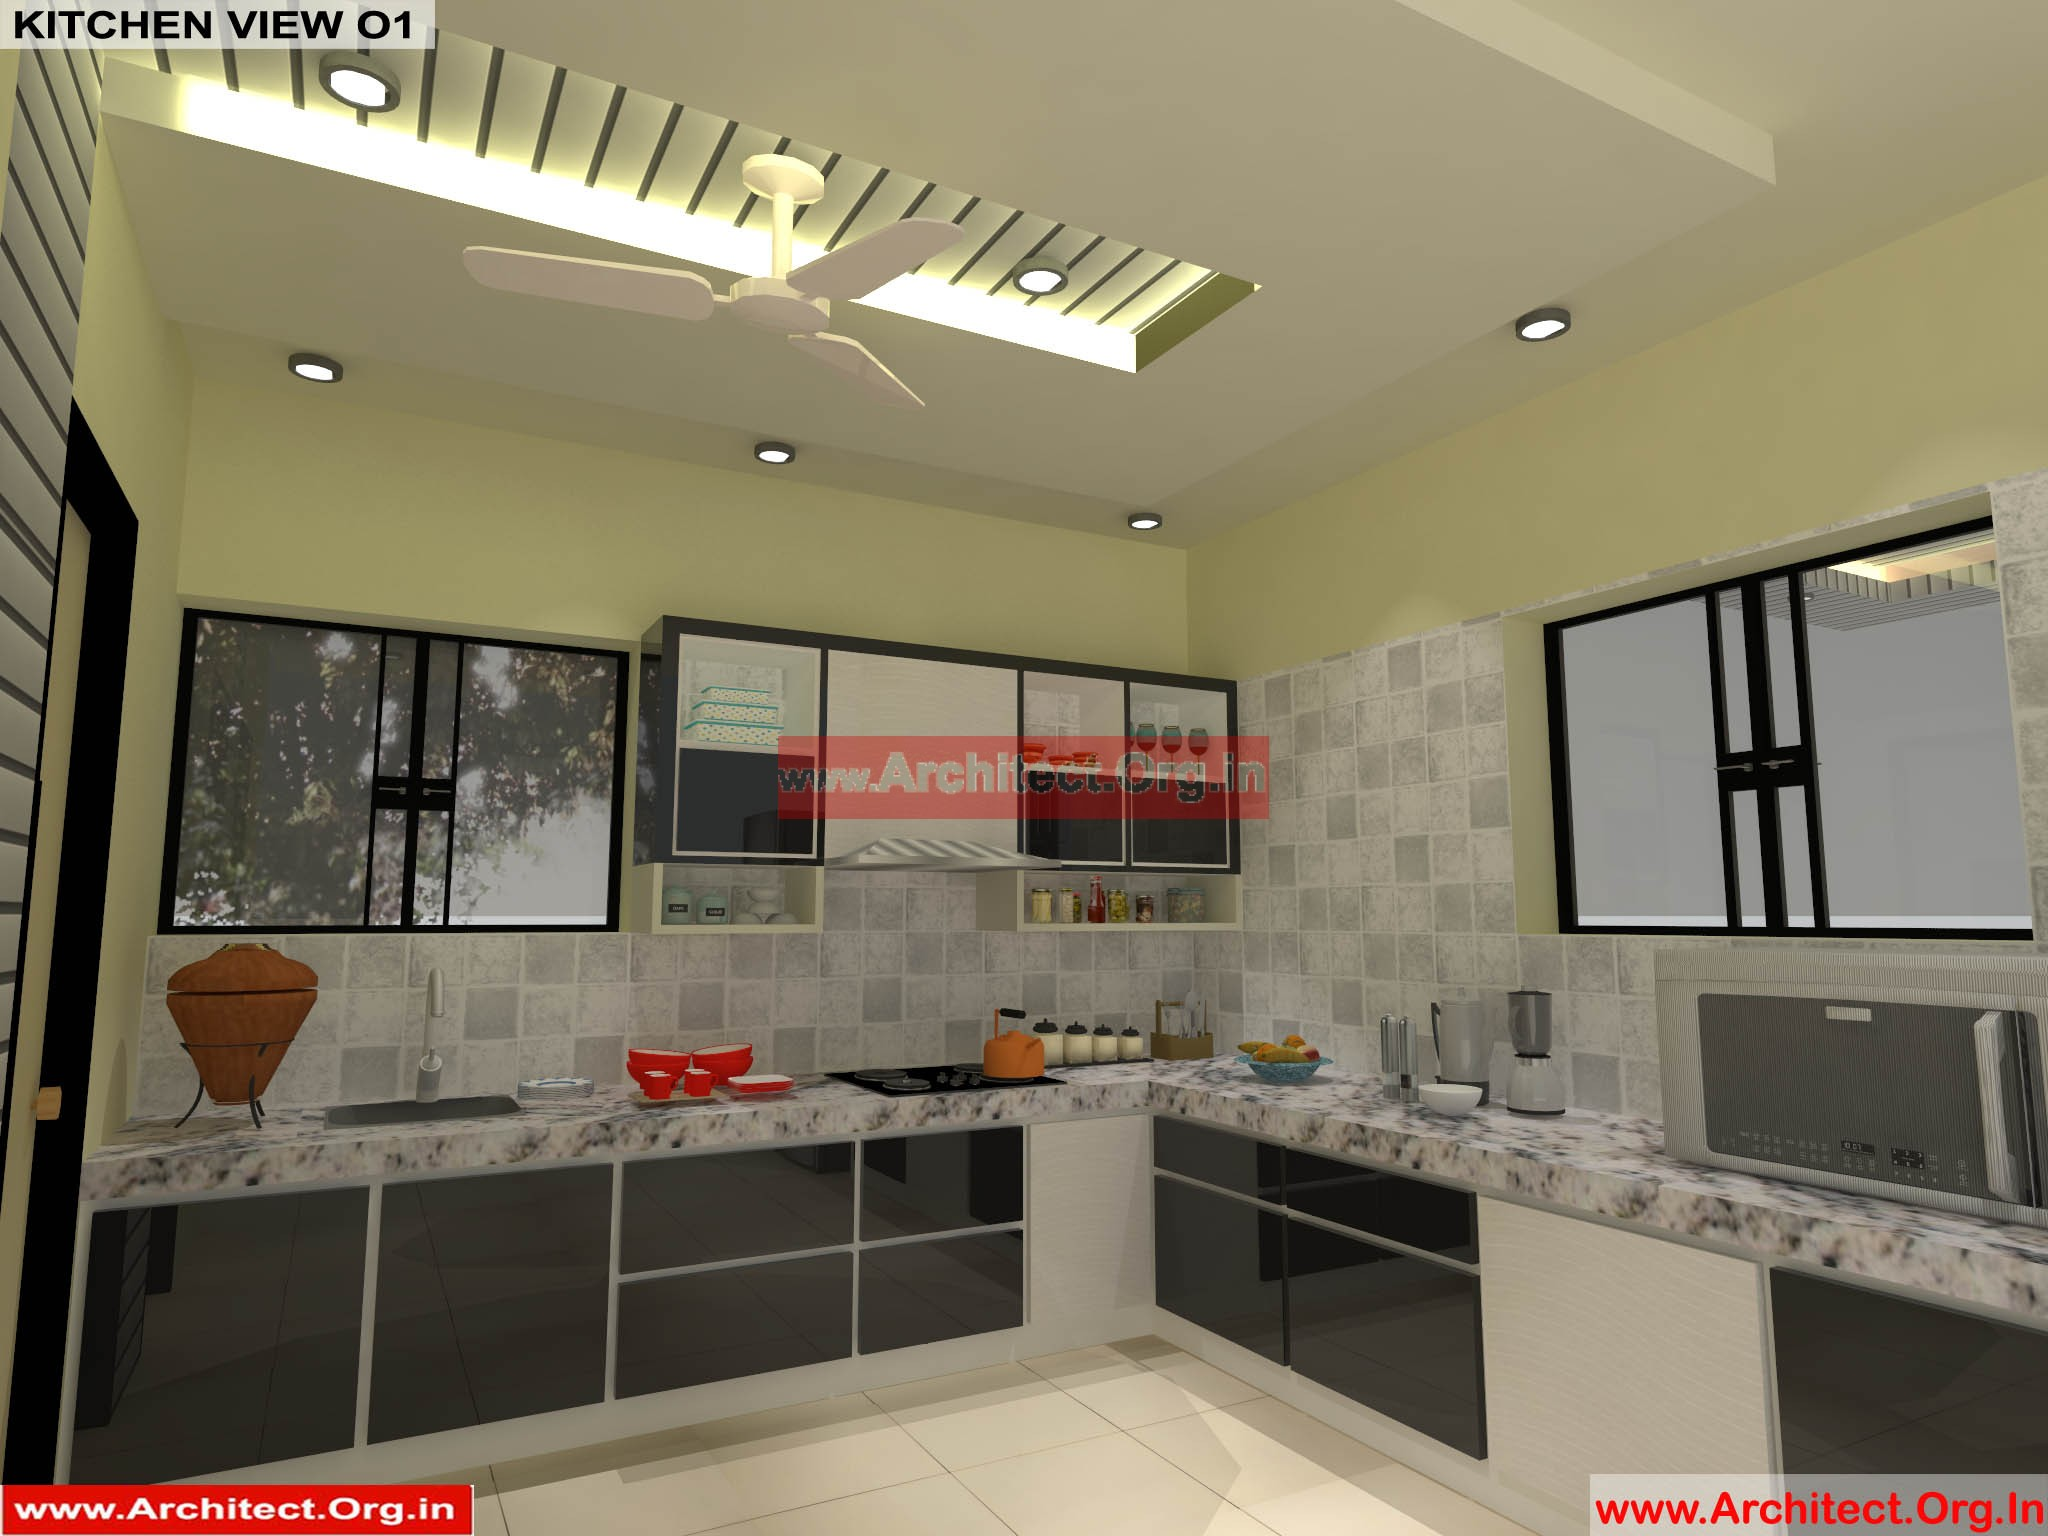 Mr pankaj fr ms rakhi nagpur maharashtra house interior kitchen view 01